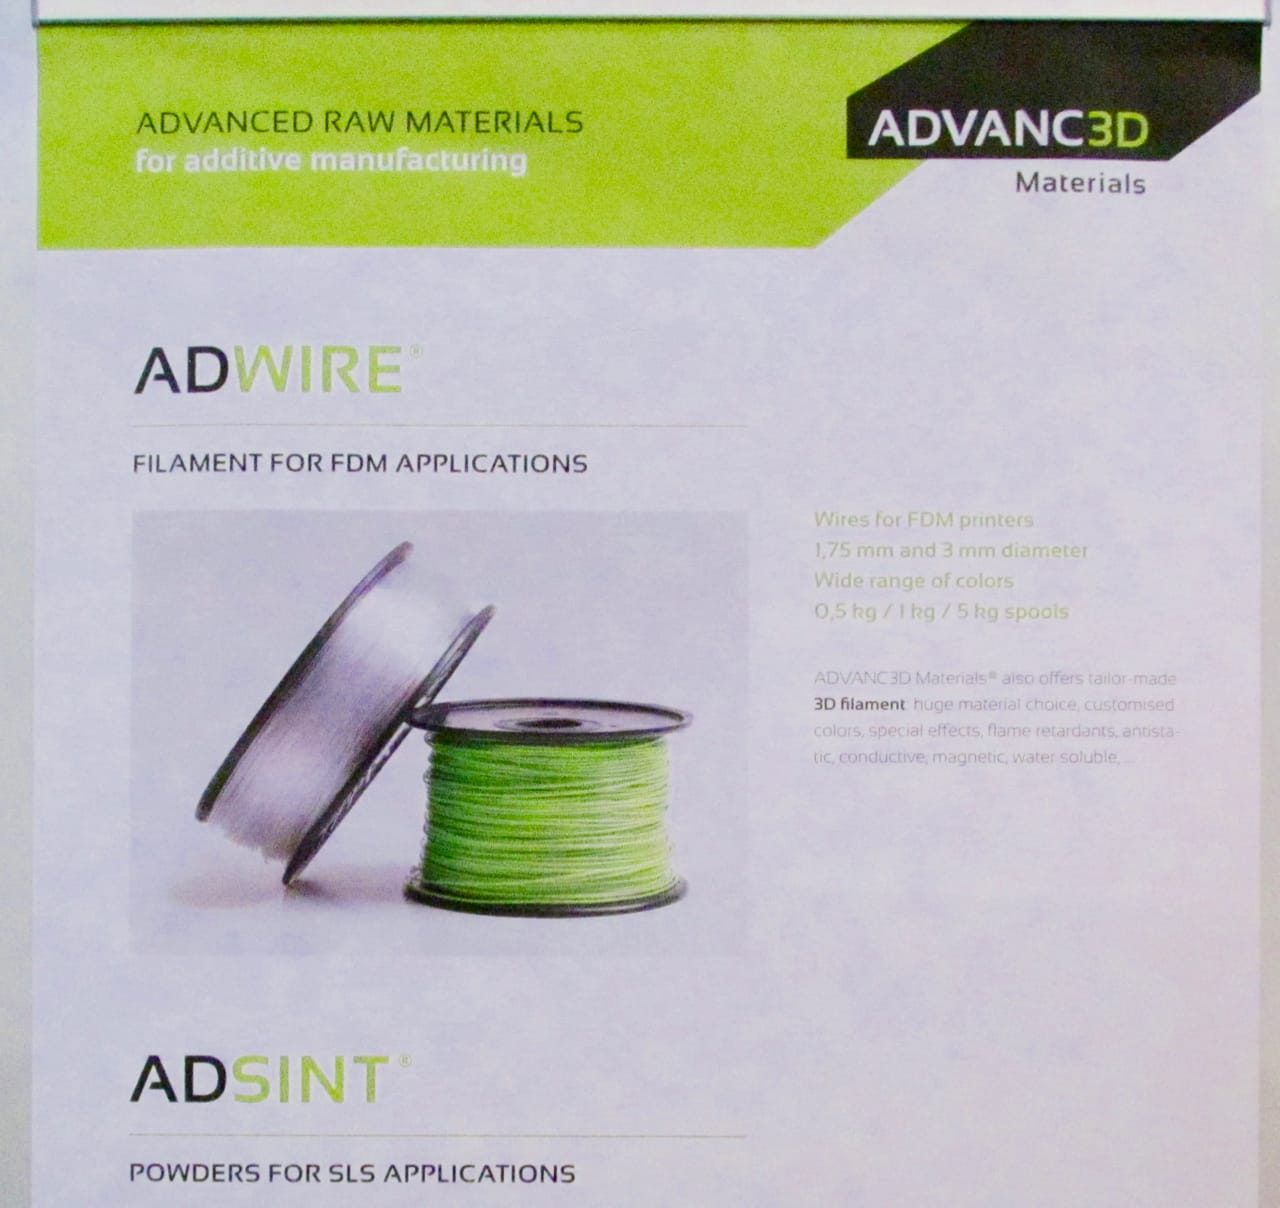 Earlier marketing material from ADVANC3D Materials showing they do produce 3D printer filaments